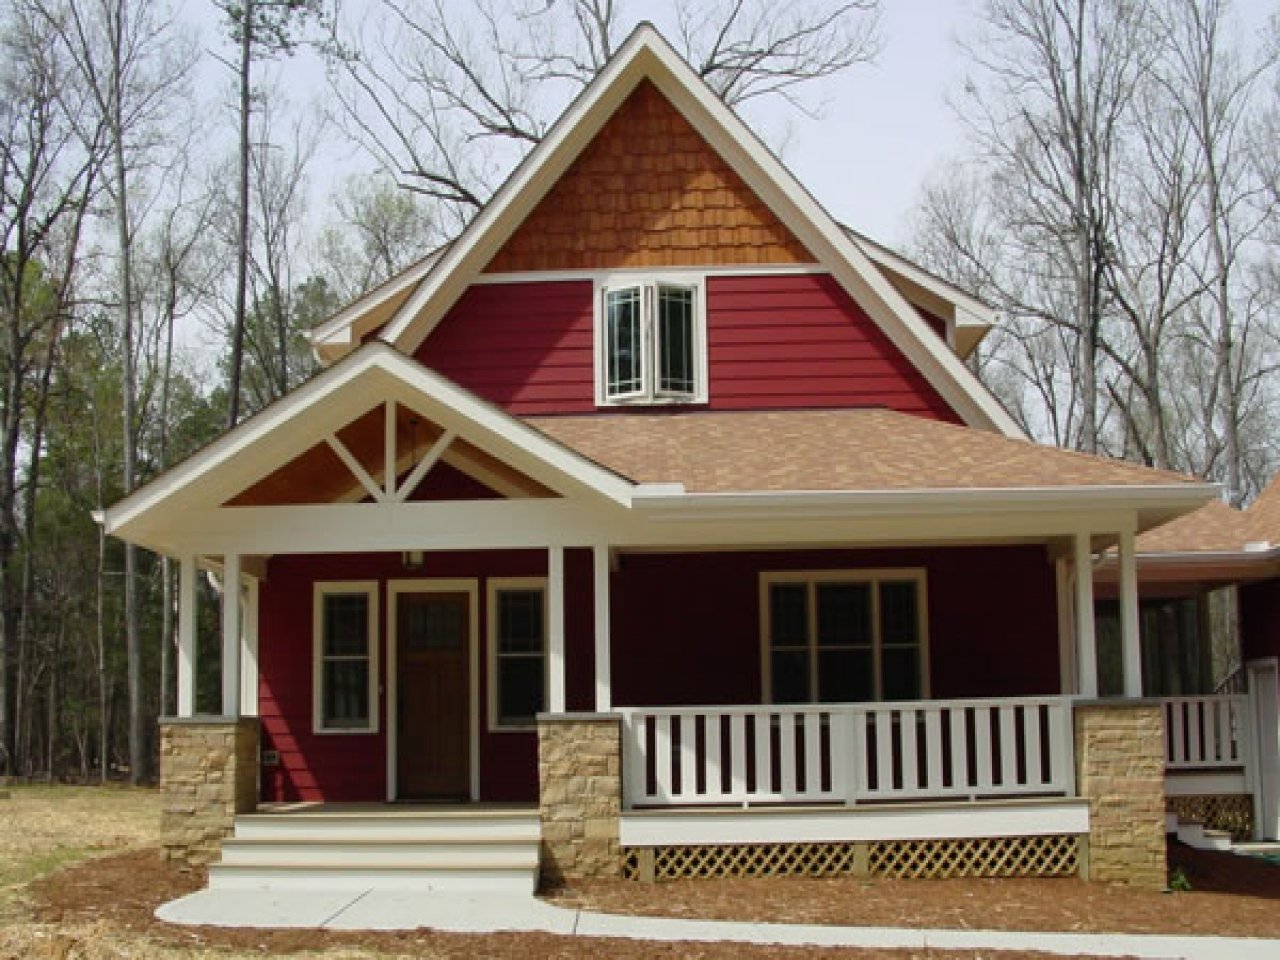 Craftsman house plans simple roof classic craftsman for Craftsman bungalow designs